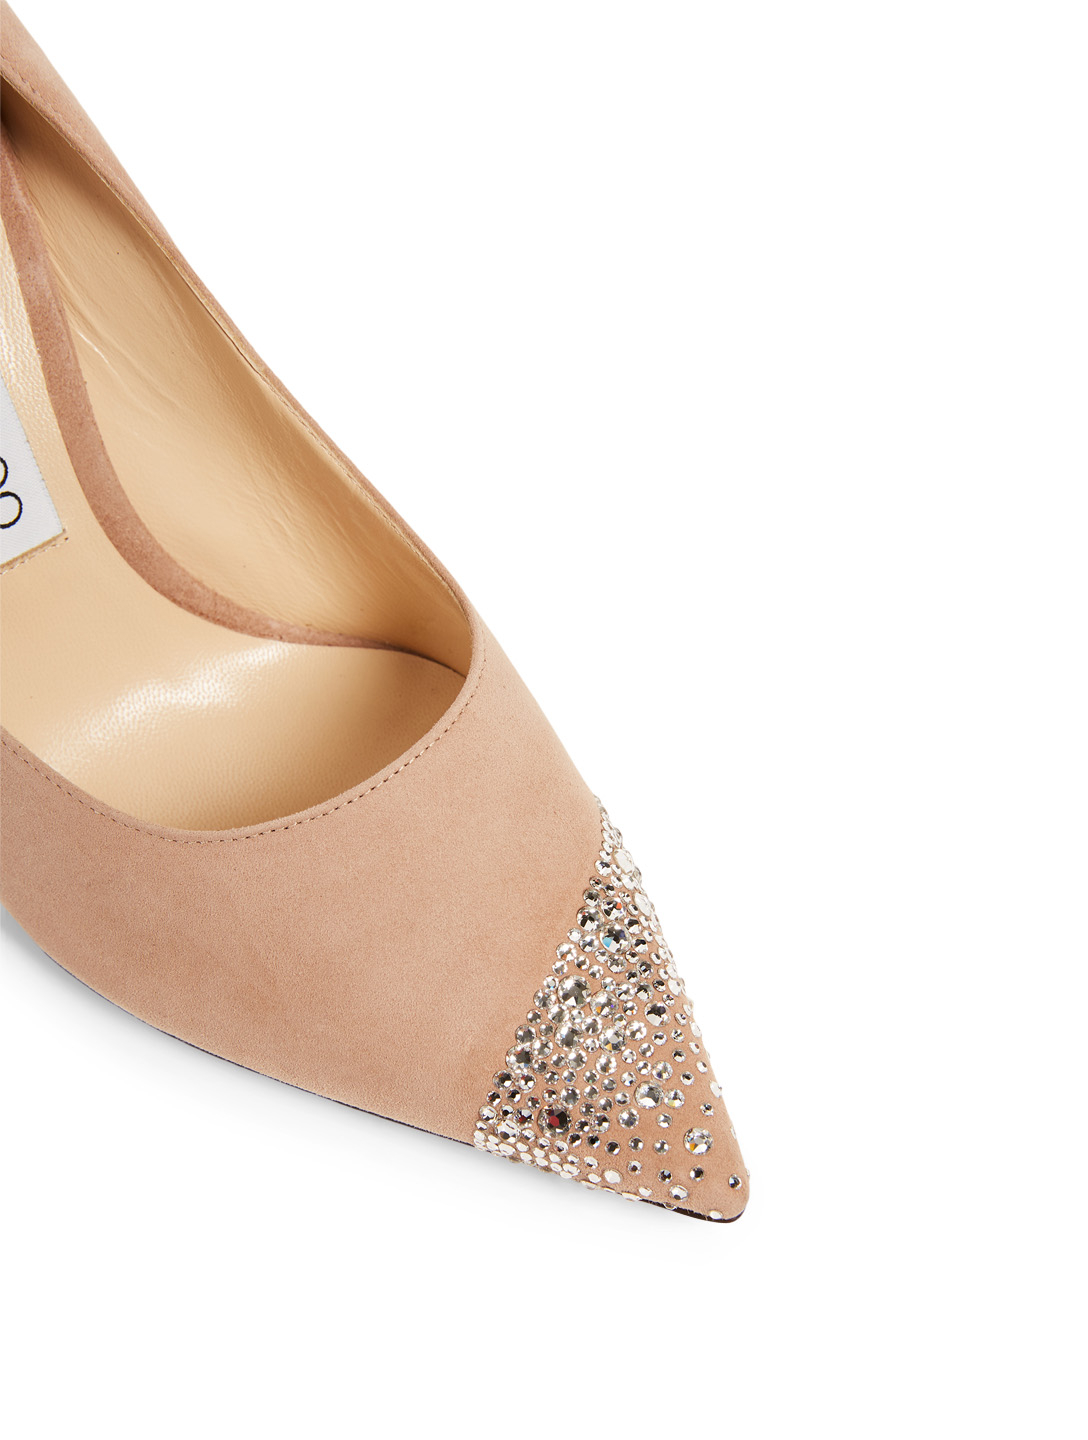 JIMMY CHOO Love 100 Suede Pumps With Asymmetric Sprinkled Crystals Women's Neutral